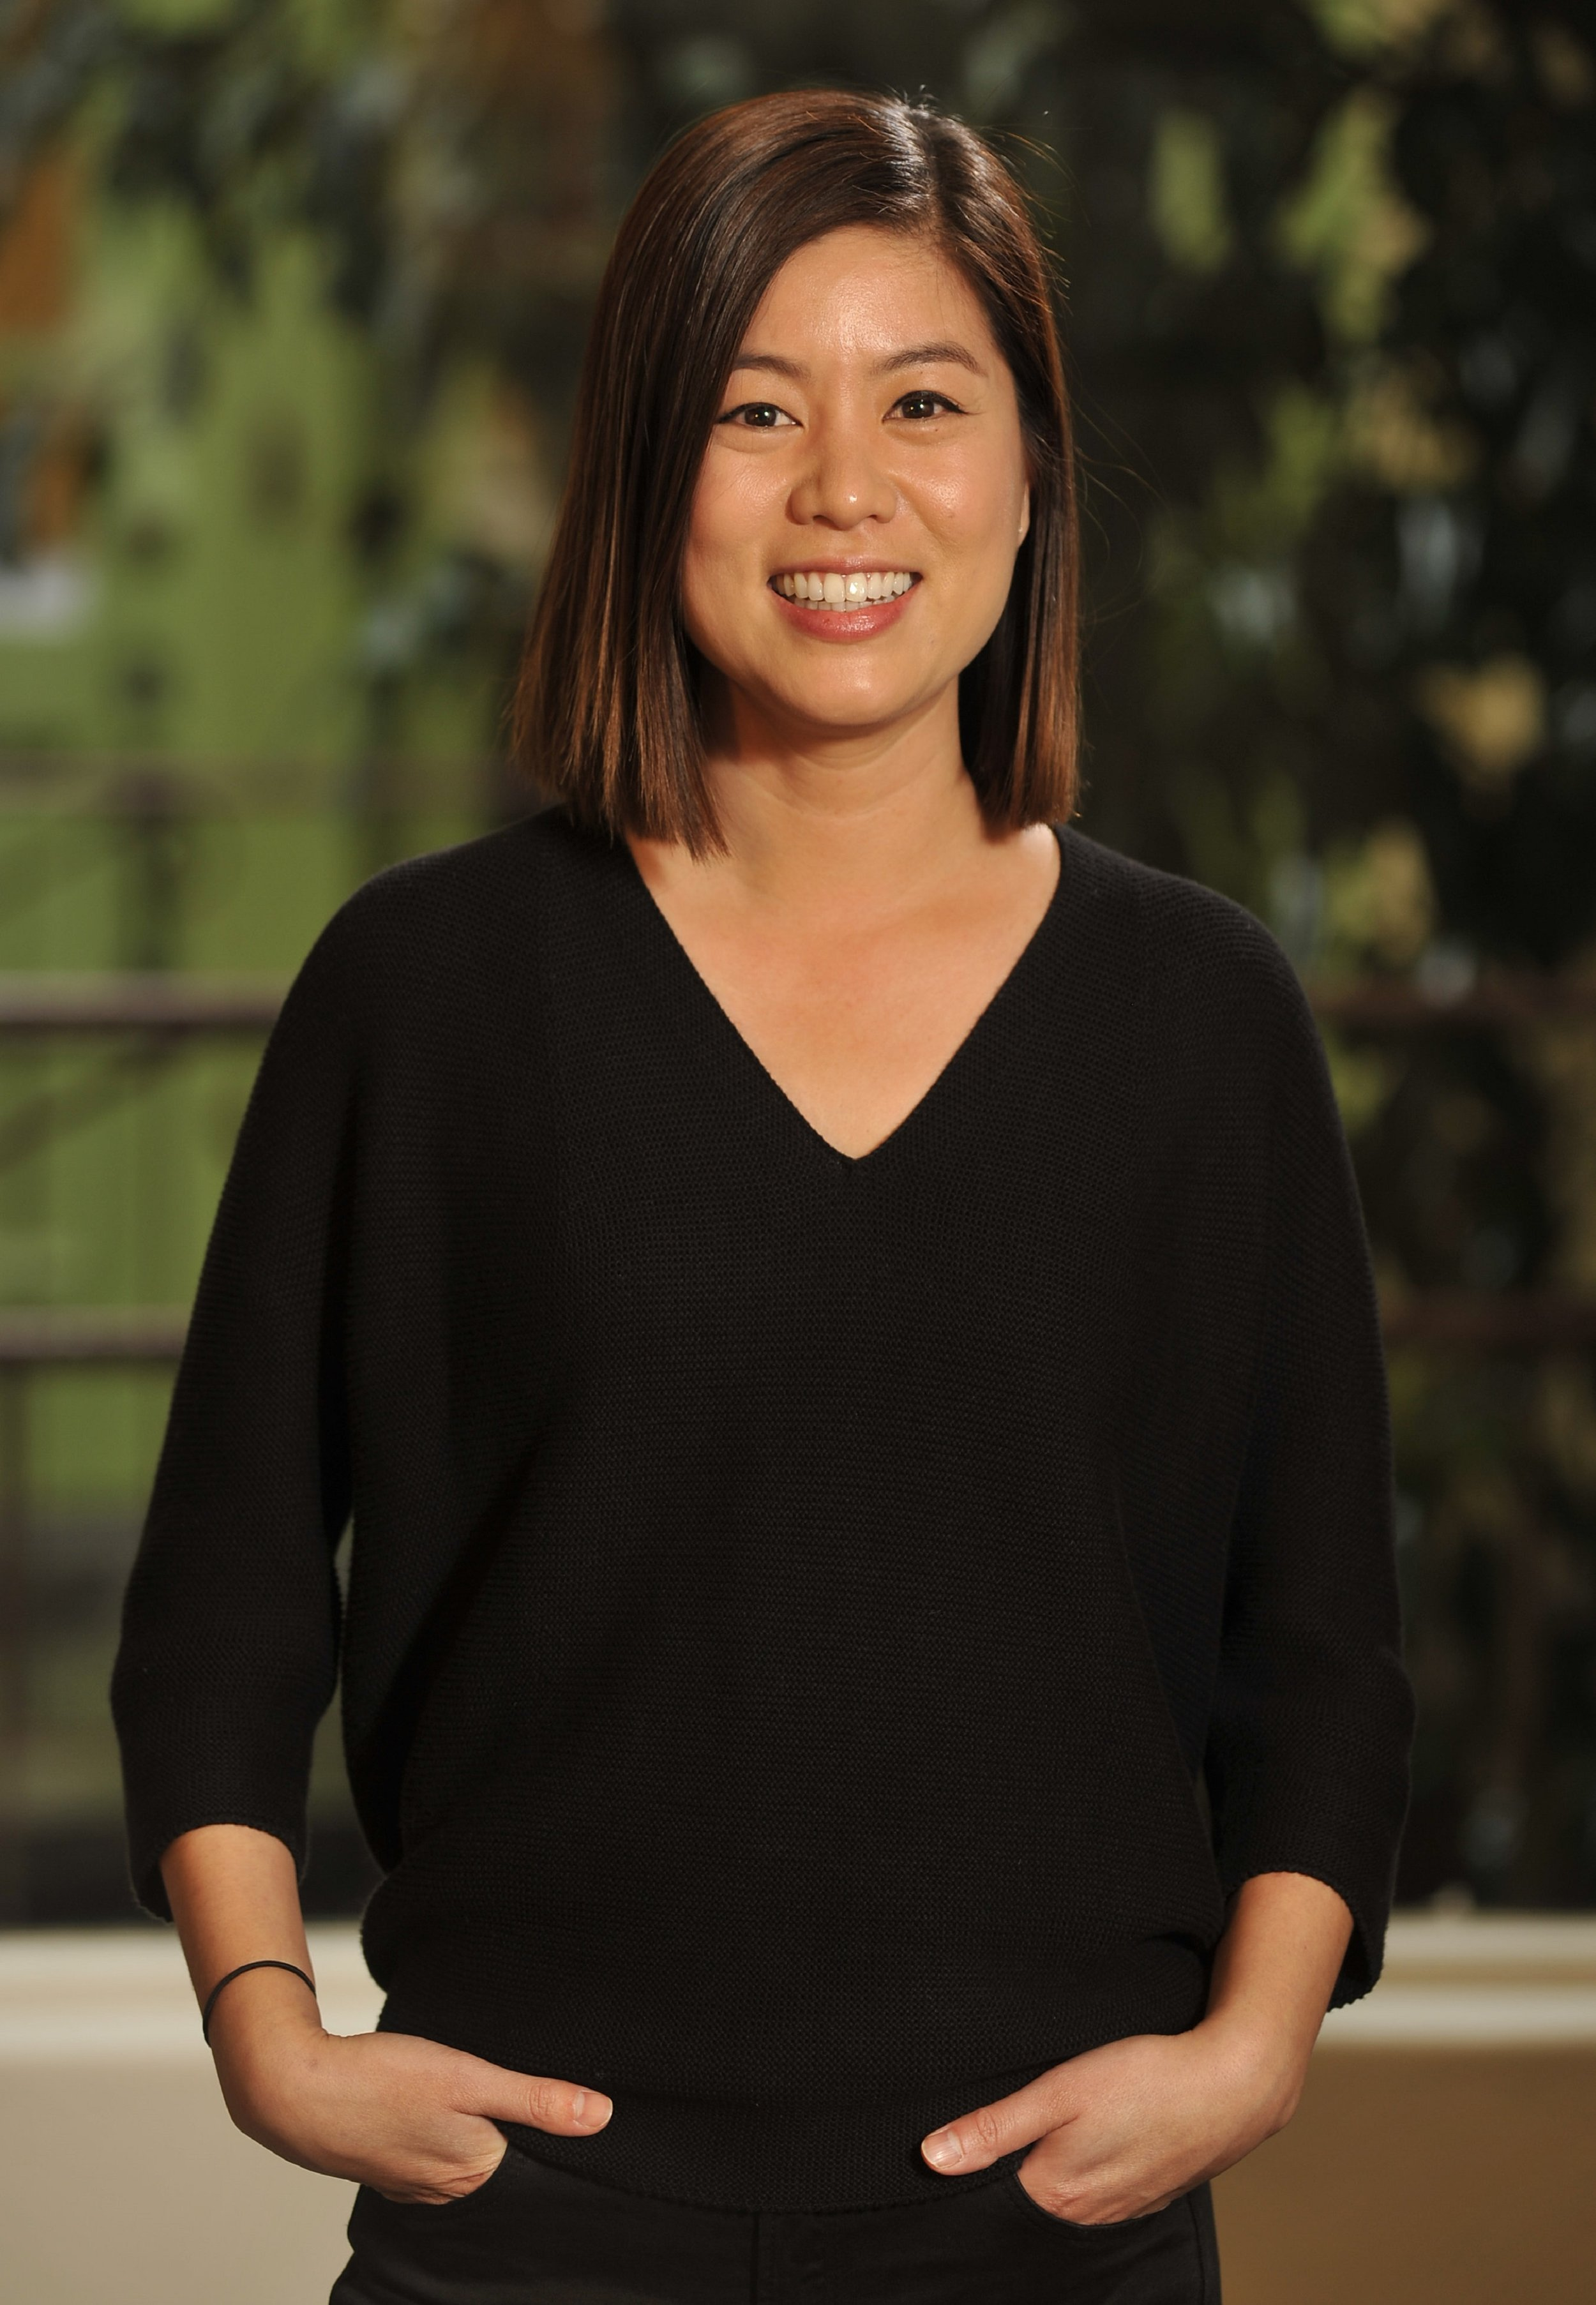 Lorie Nguyen, MSWFamily Team Manager - lorie@imaginela.org